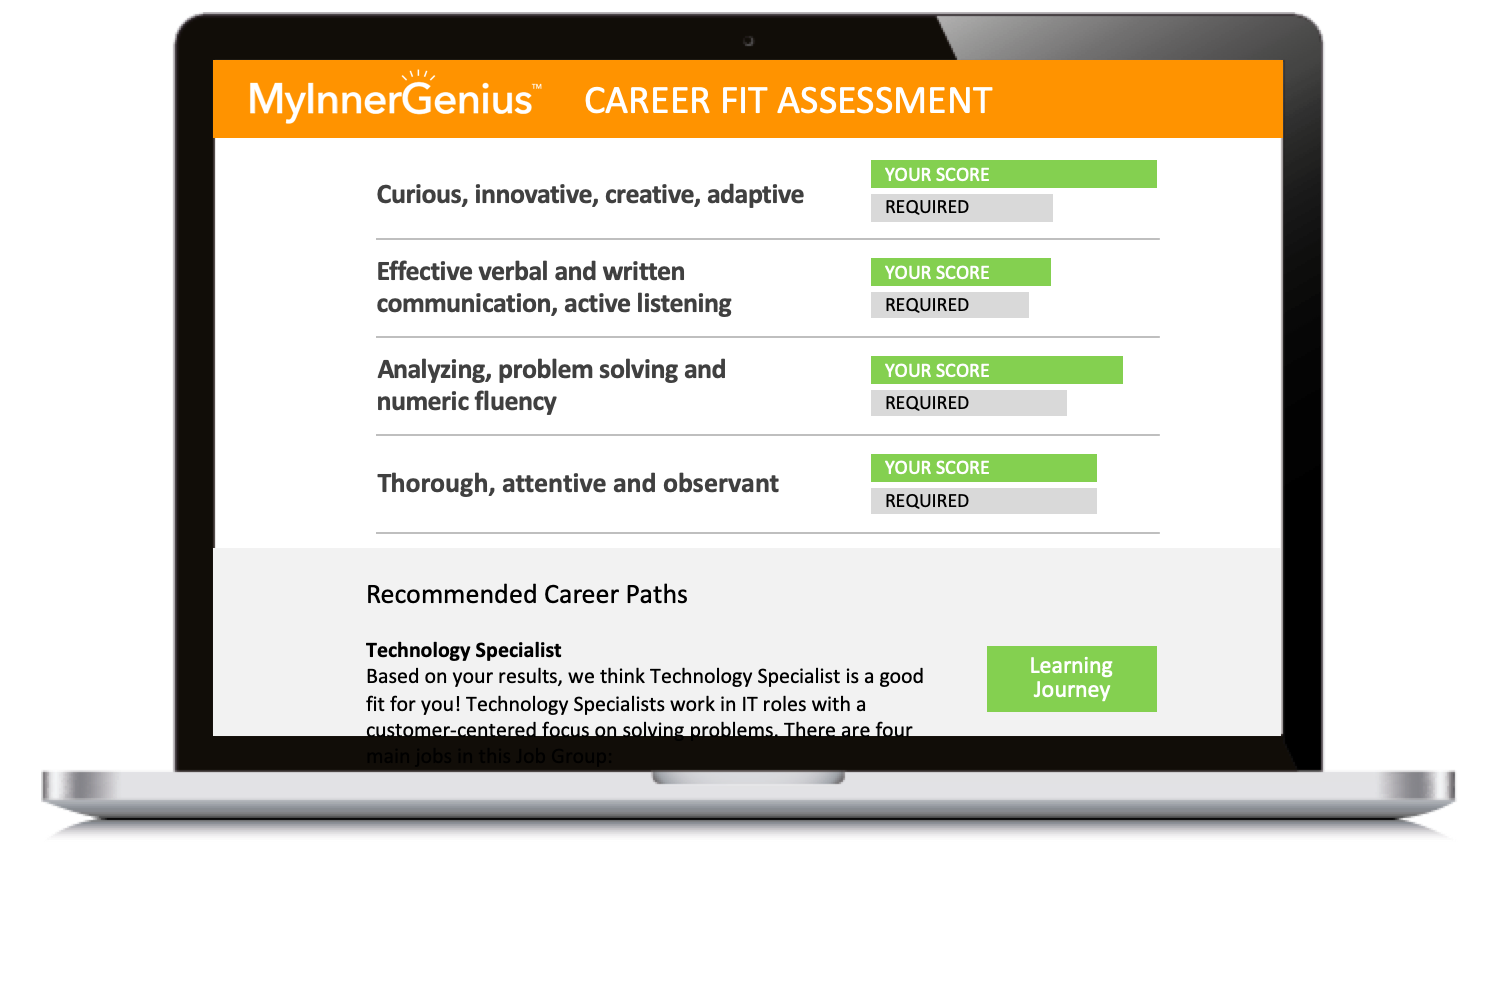 MyInnerGenius Career Fit Assessments